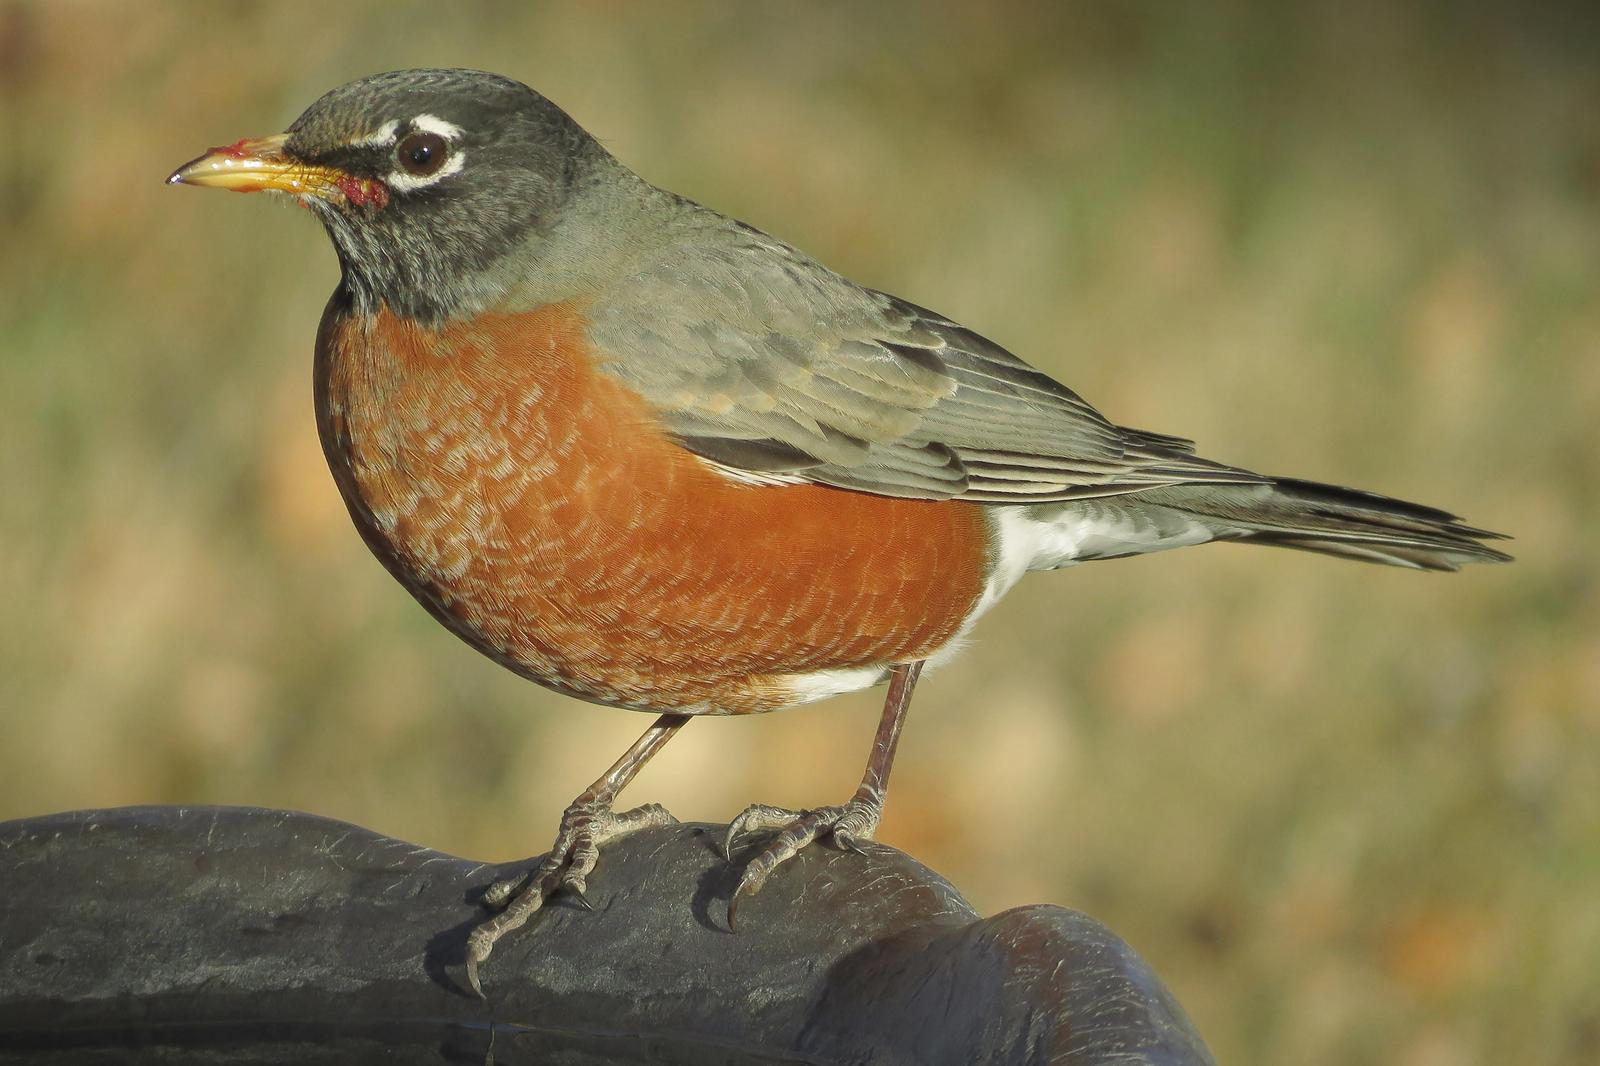 American Robin Photo by Bob Neugebauer